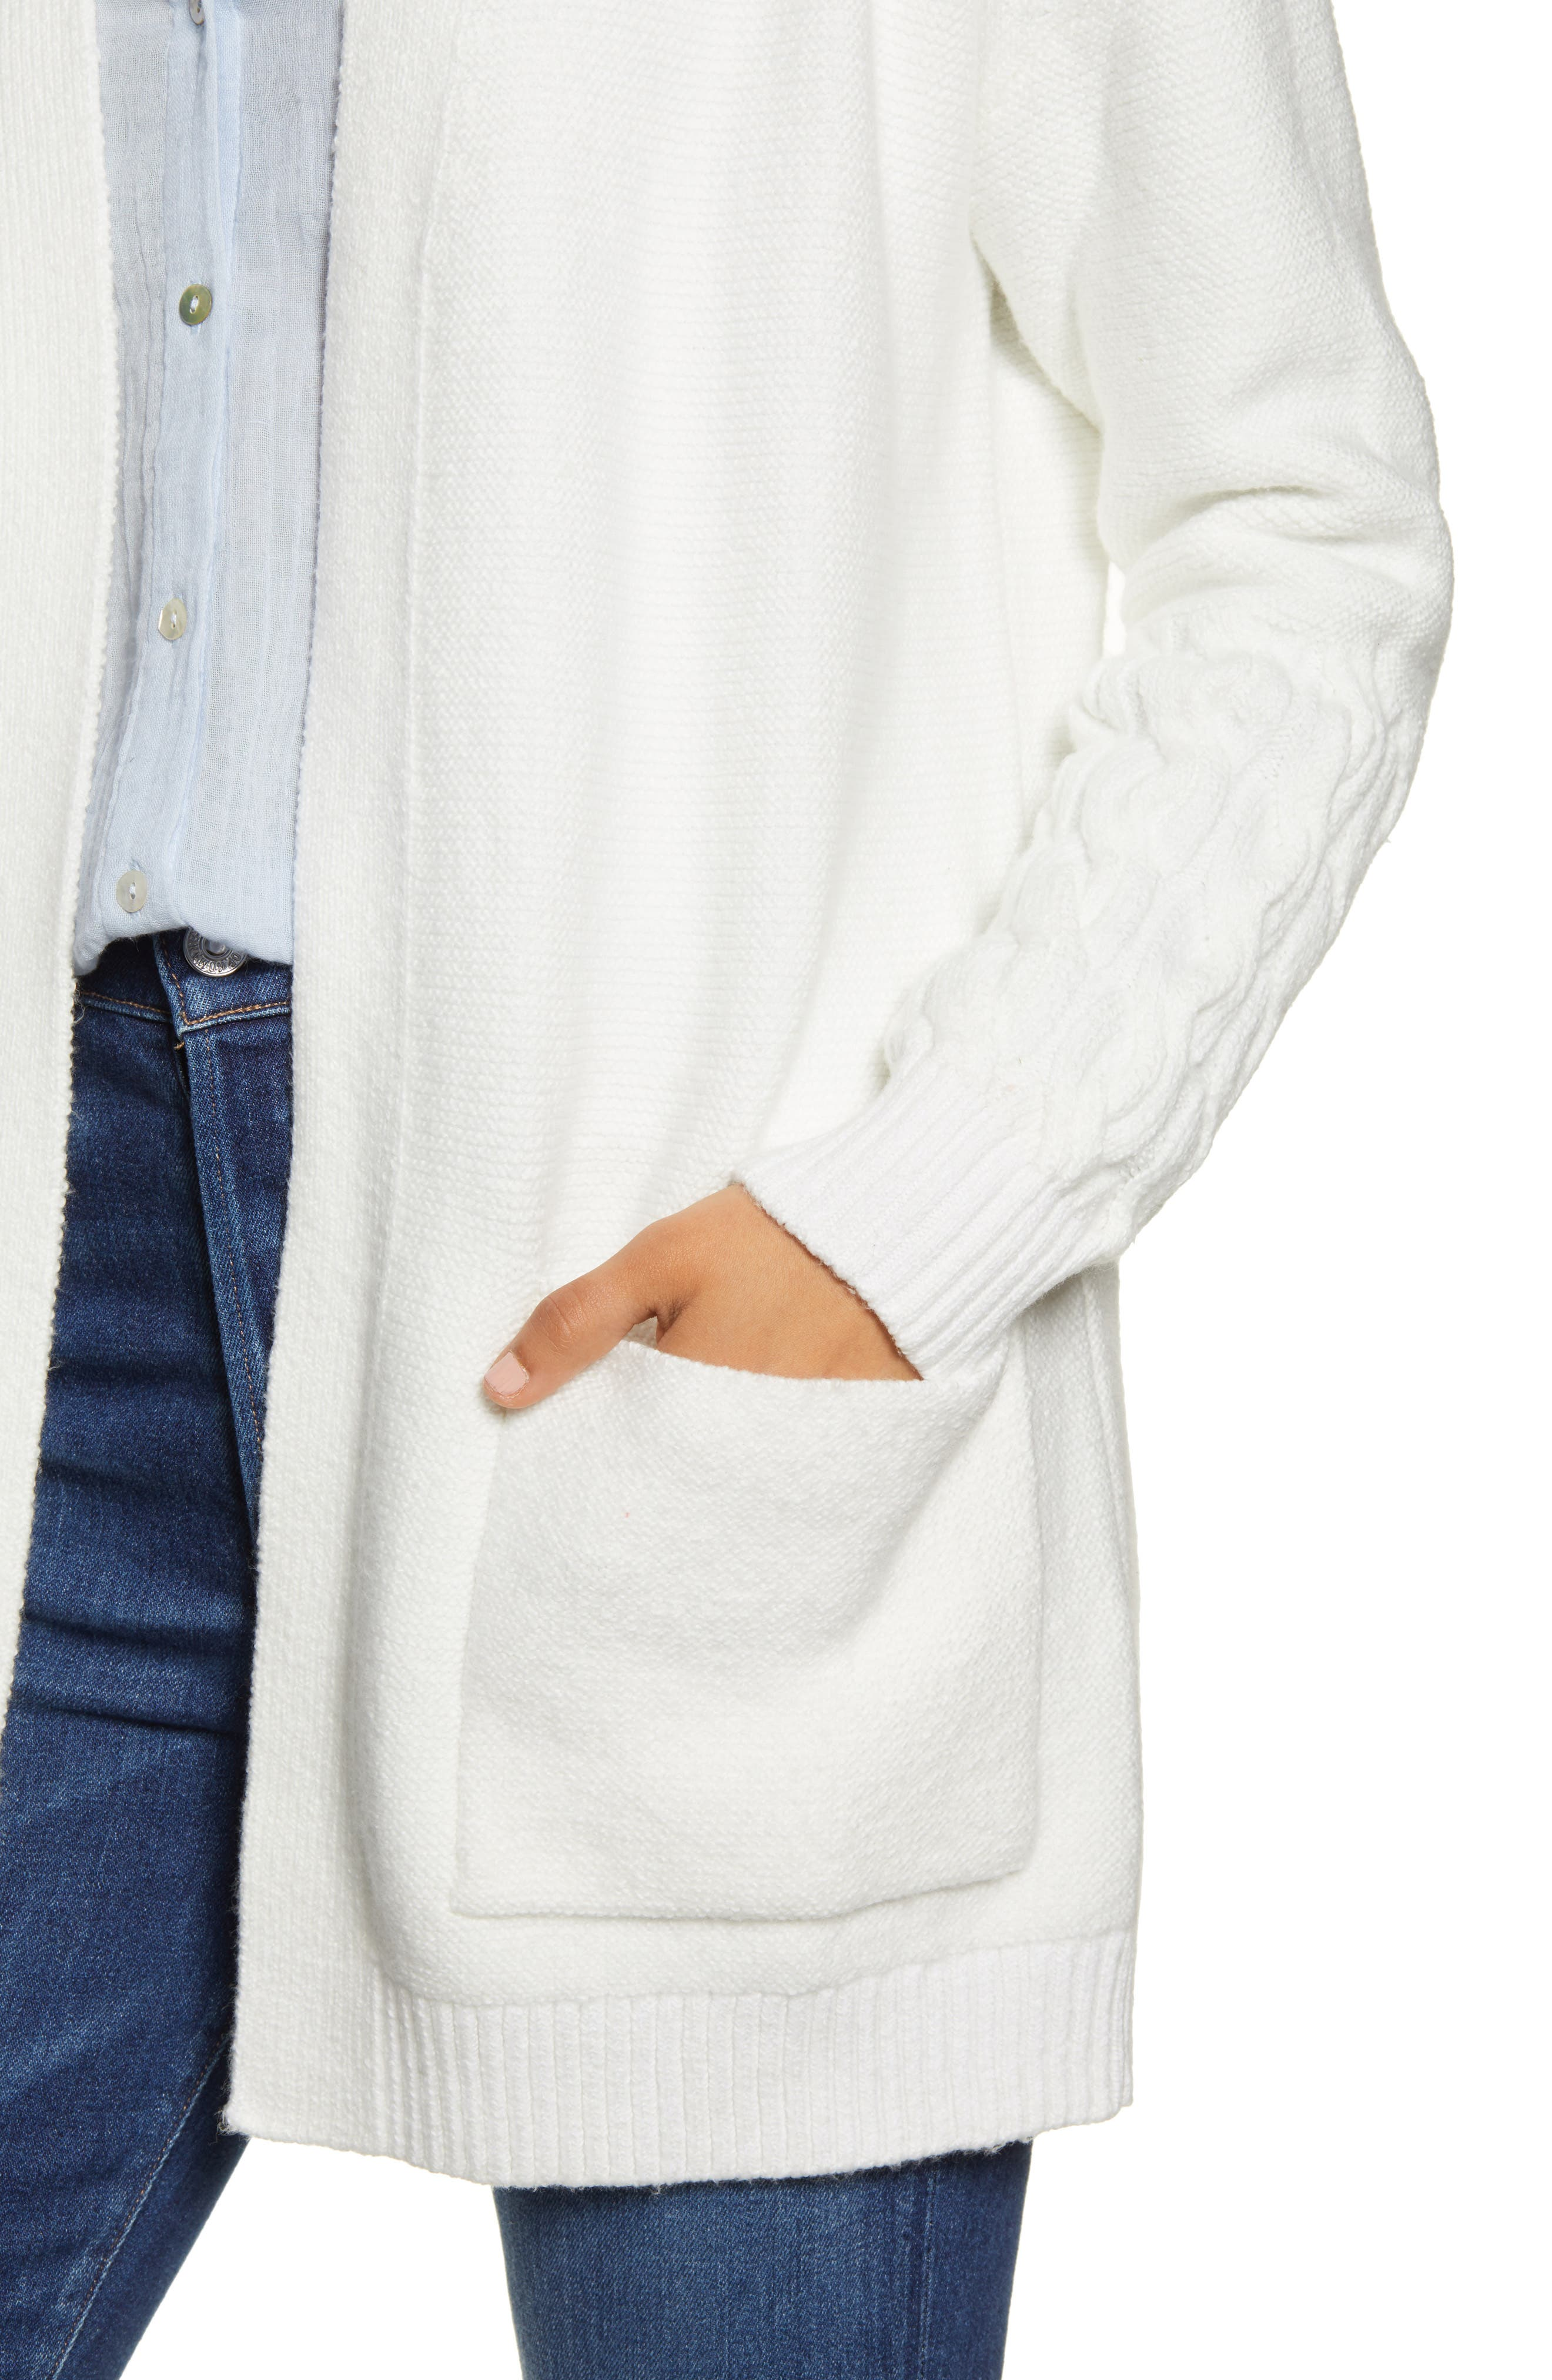 Lucky Brand Tops Venice Cable Cardigan